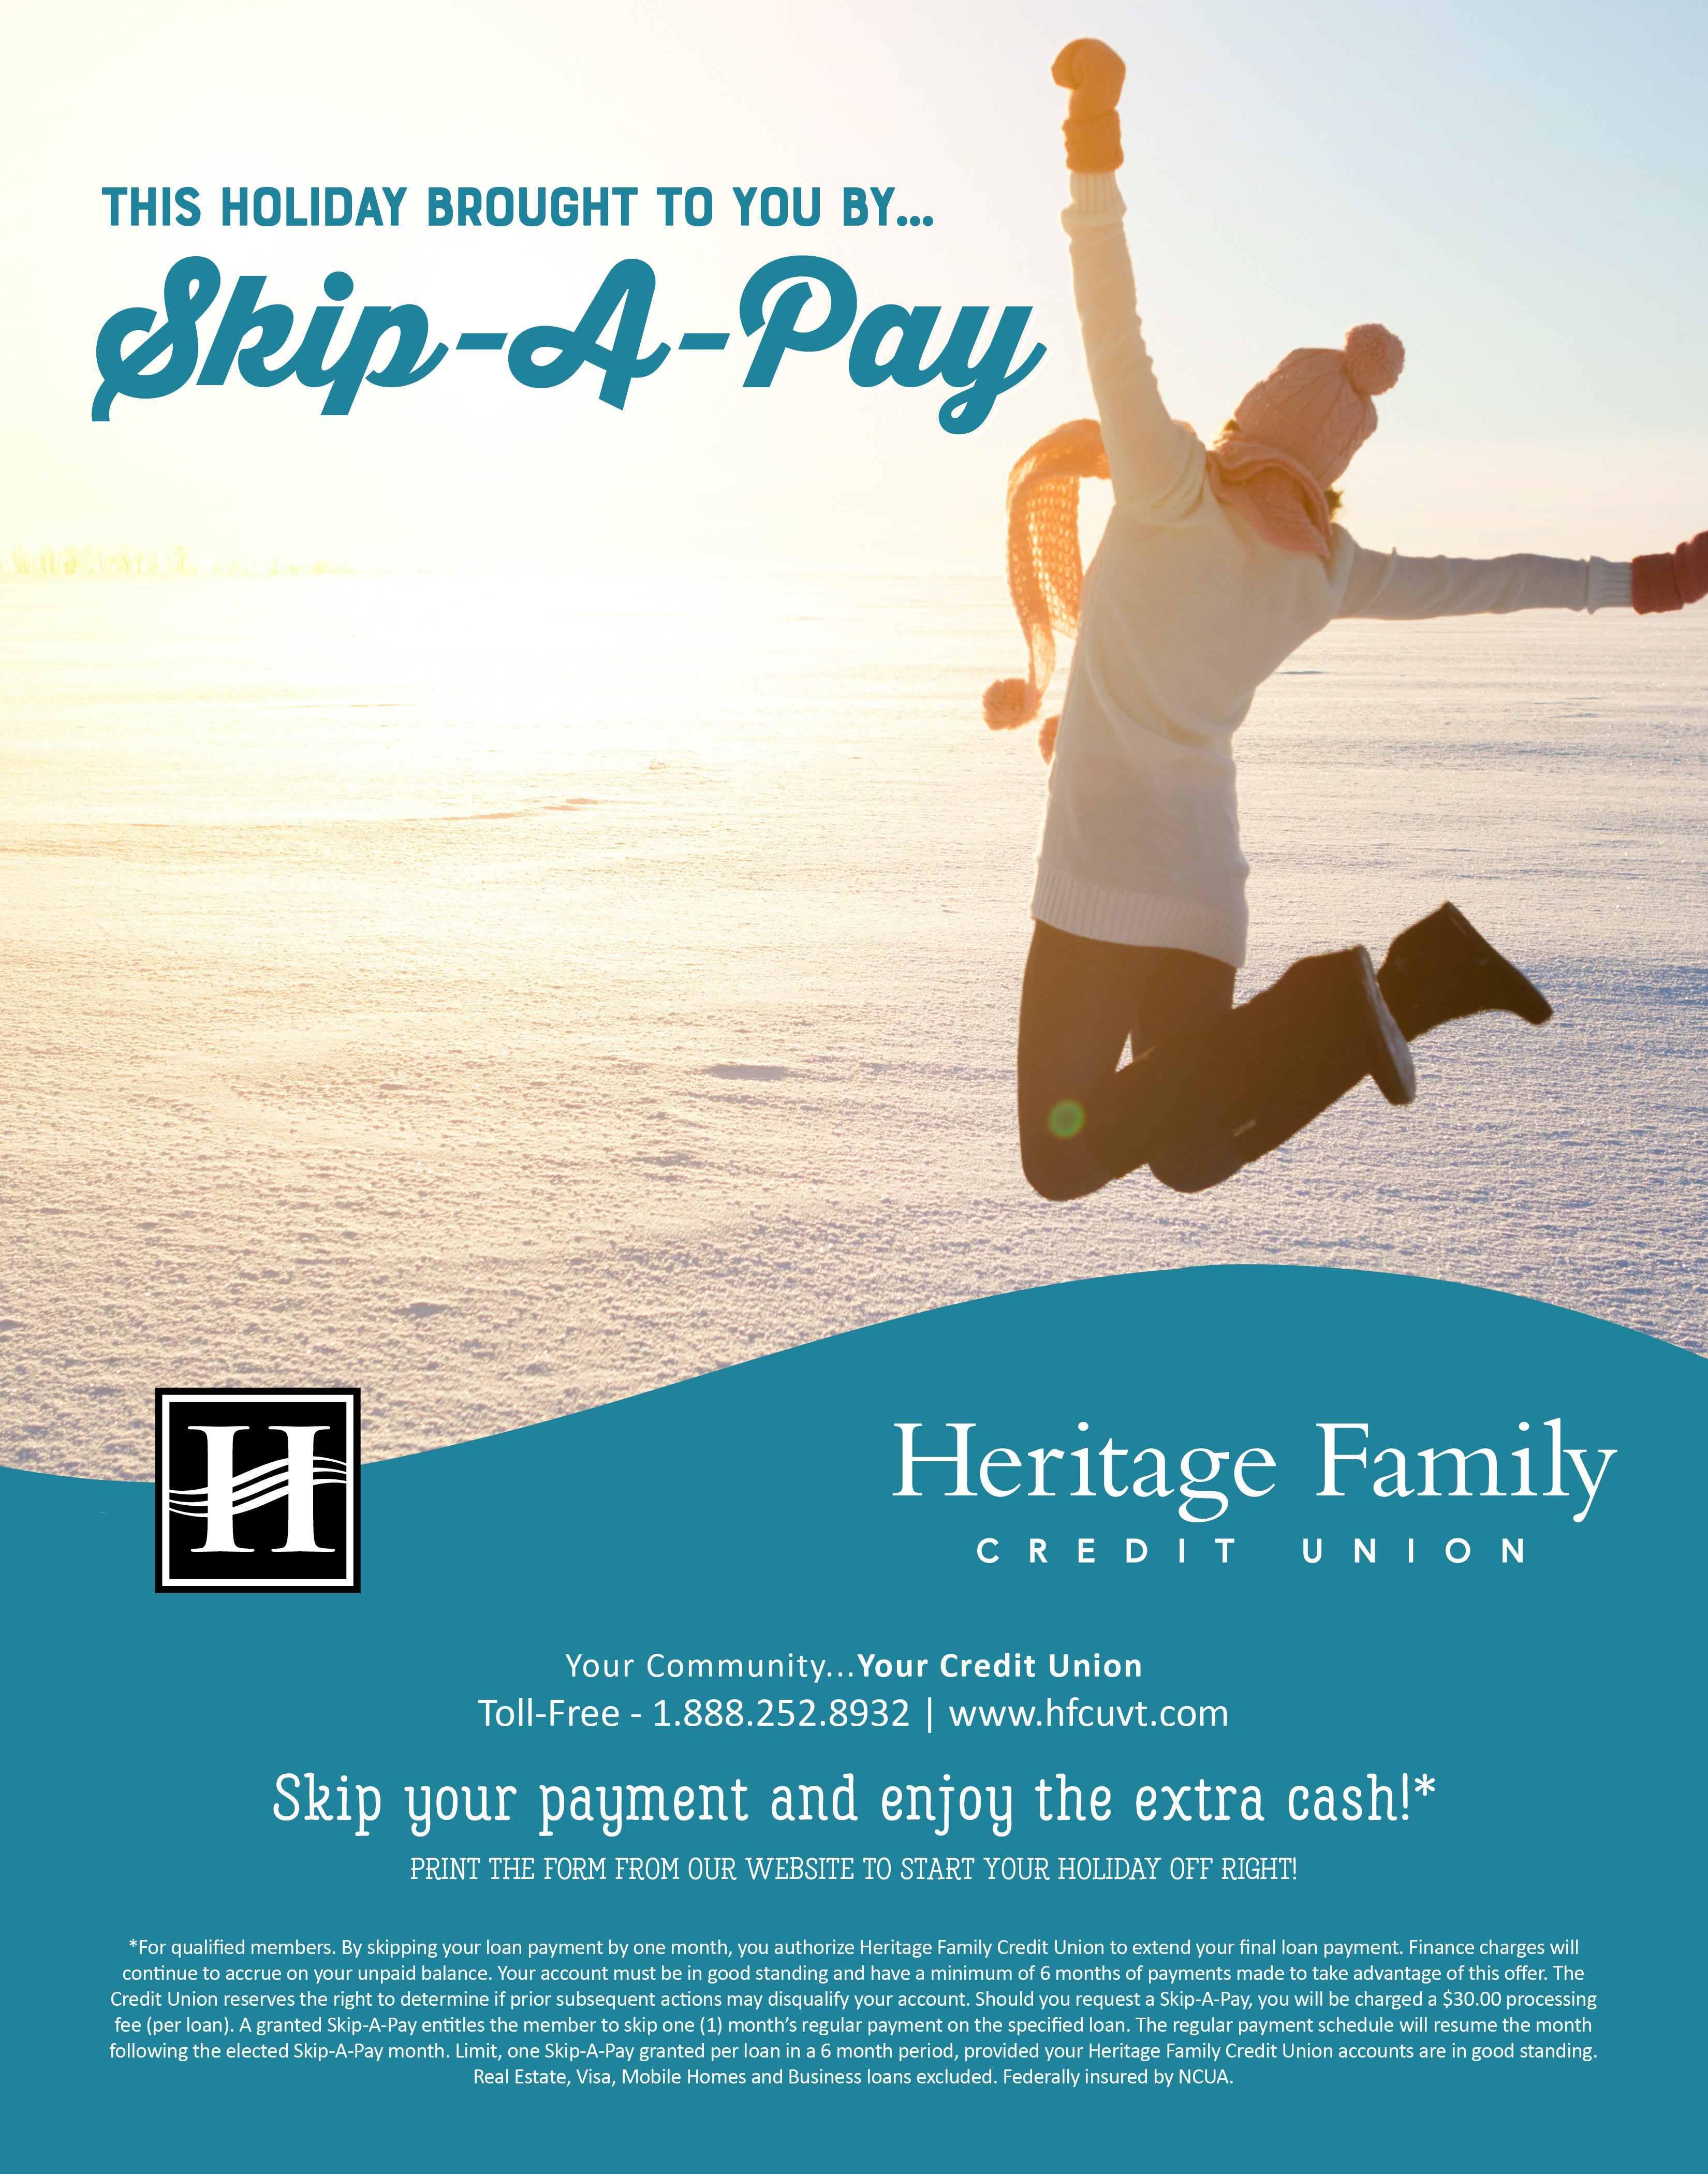 This holiday brought to you by Skip-A-Pay! Skip a payment and enjoy the extra cash!